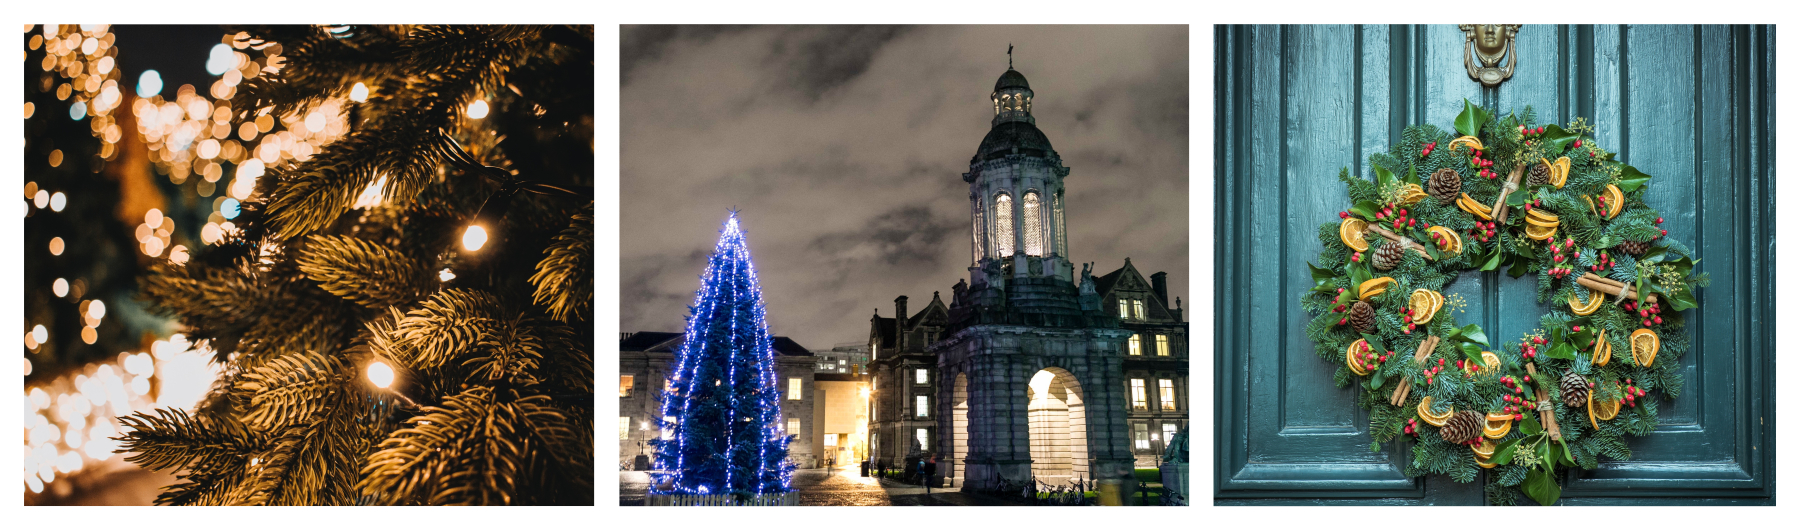 Christmas Commons for Alumni & Friends - 17 December 2019